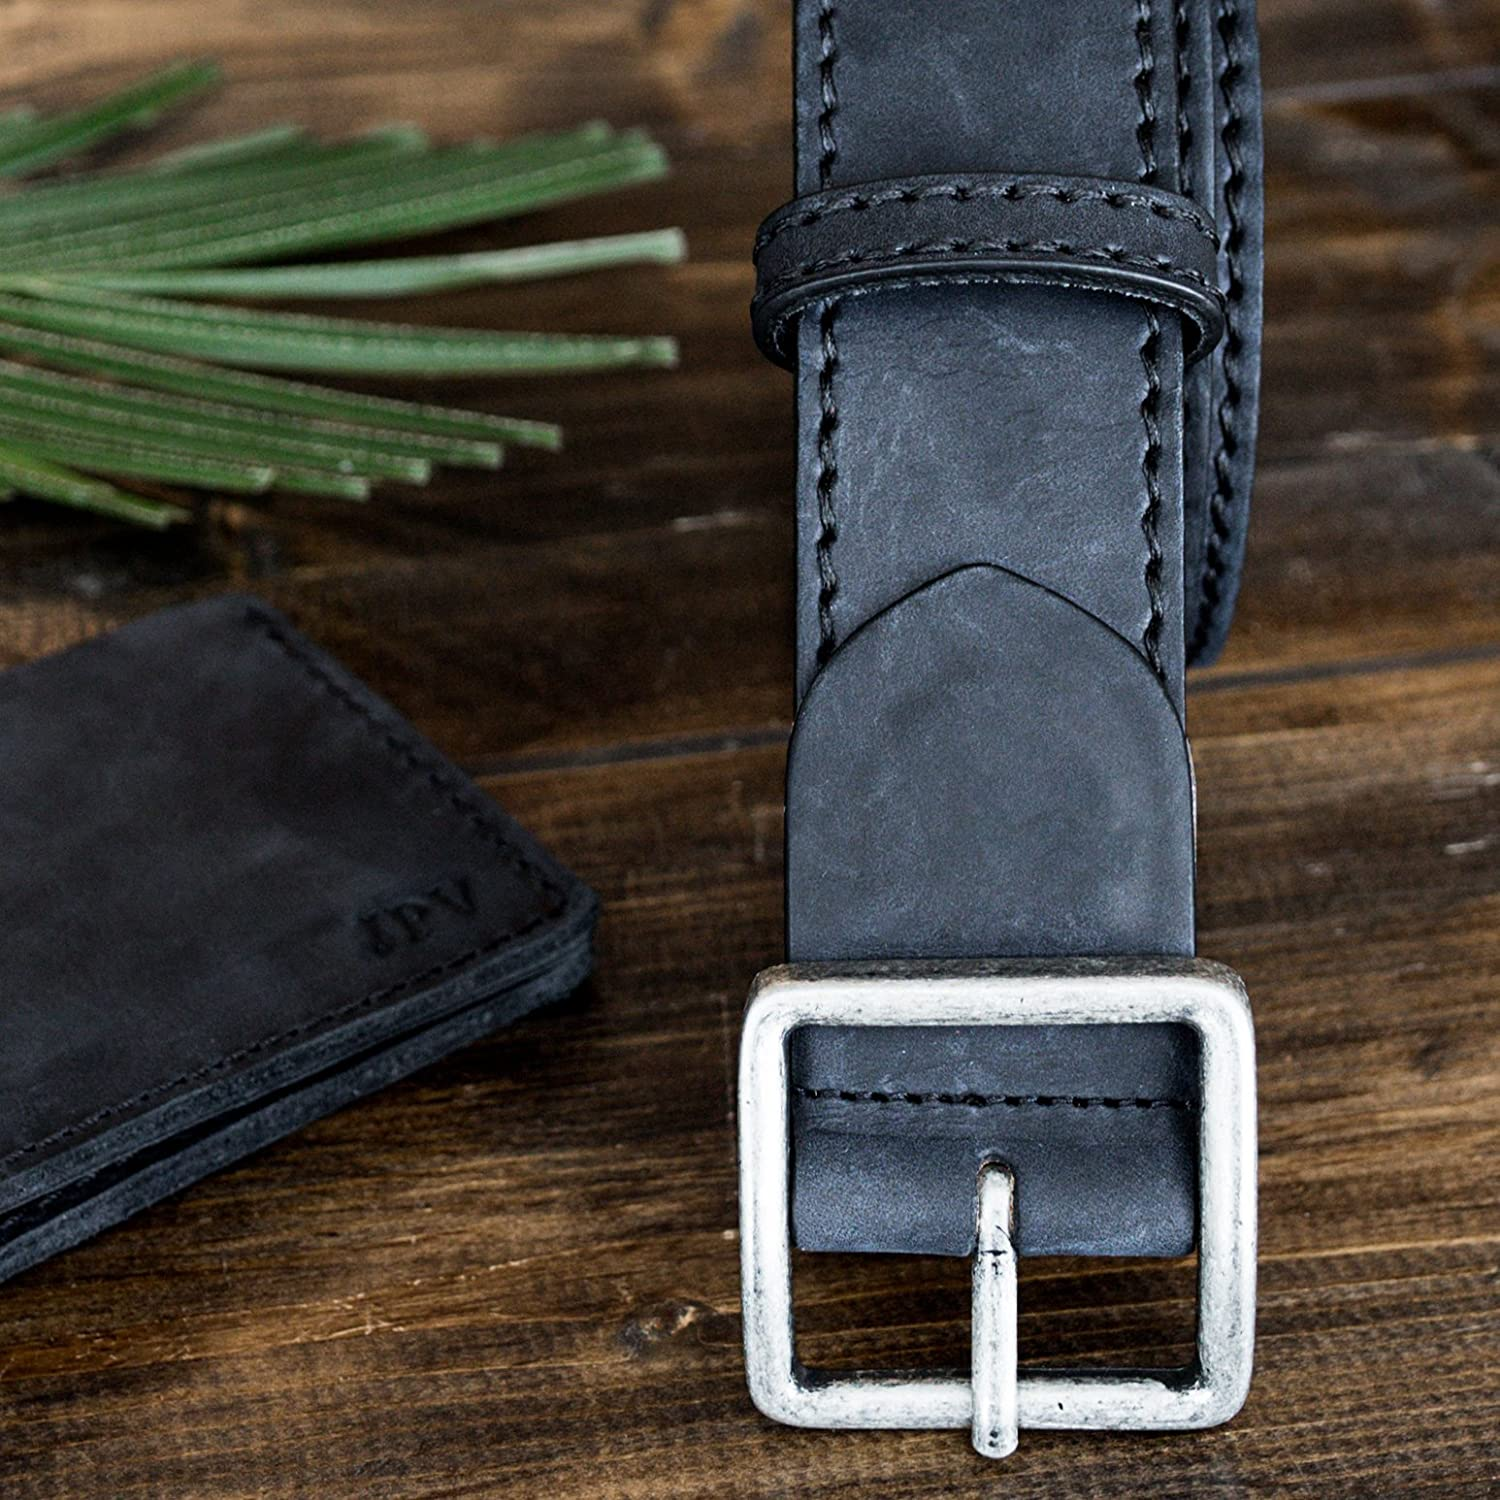 Pegai Personalized Distressed Leather Belt for Men, Rustic Minimalist Leather Belt, Monogrammed Unique Belt - Logan Charcoal Black